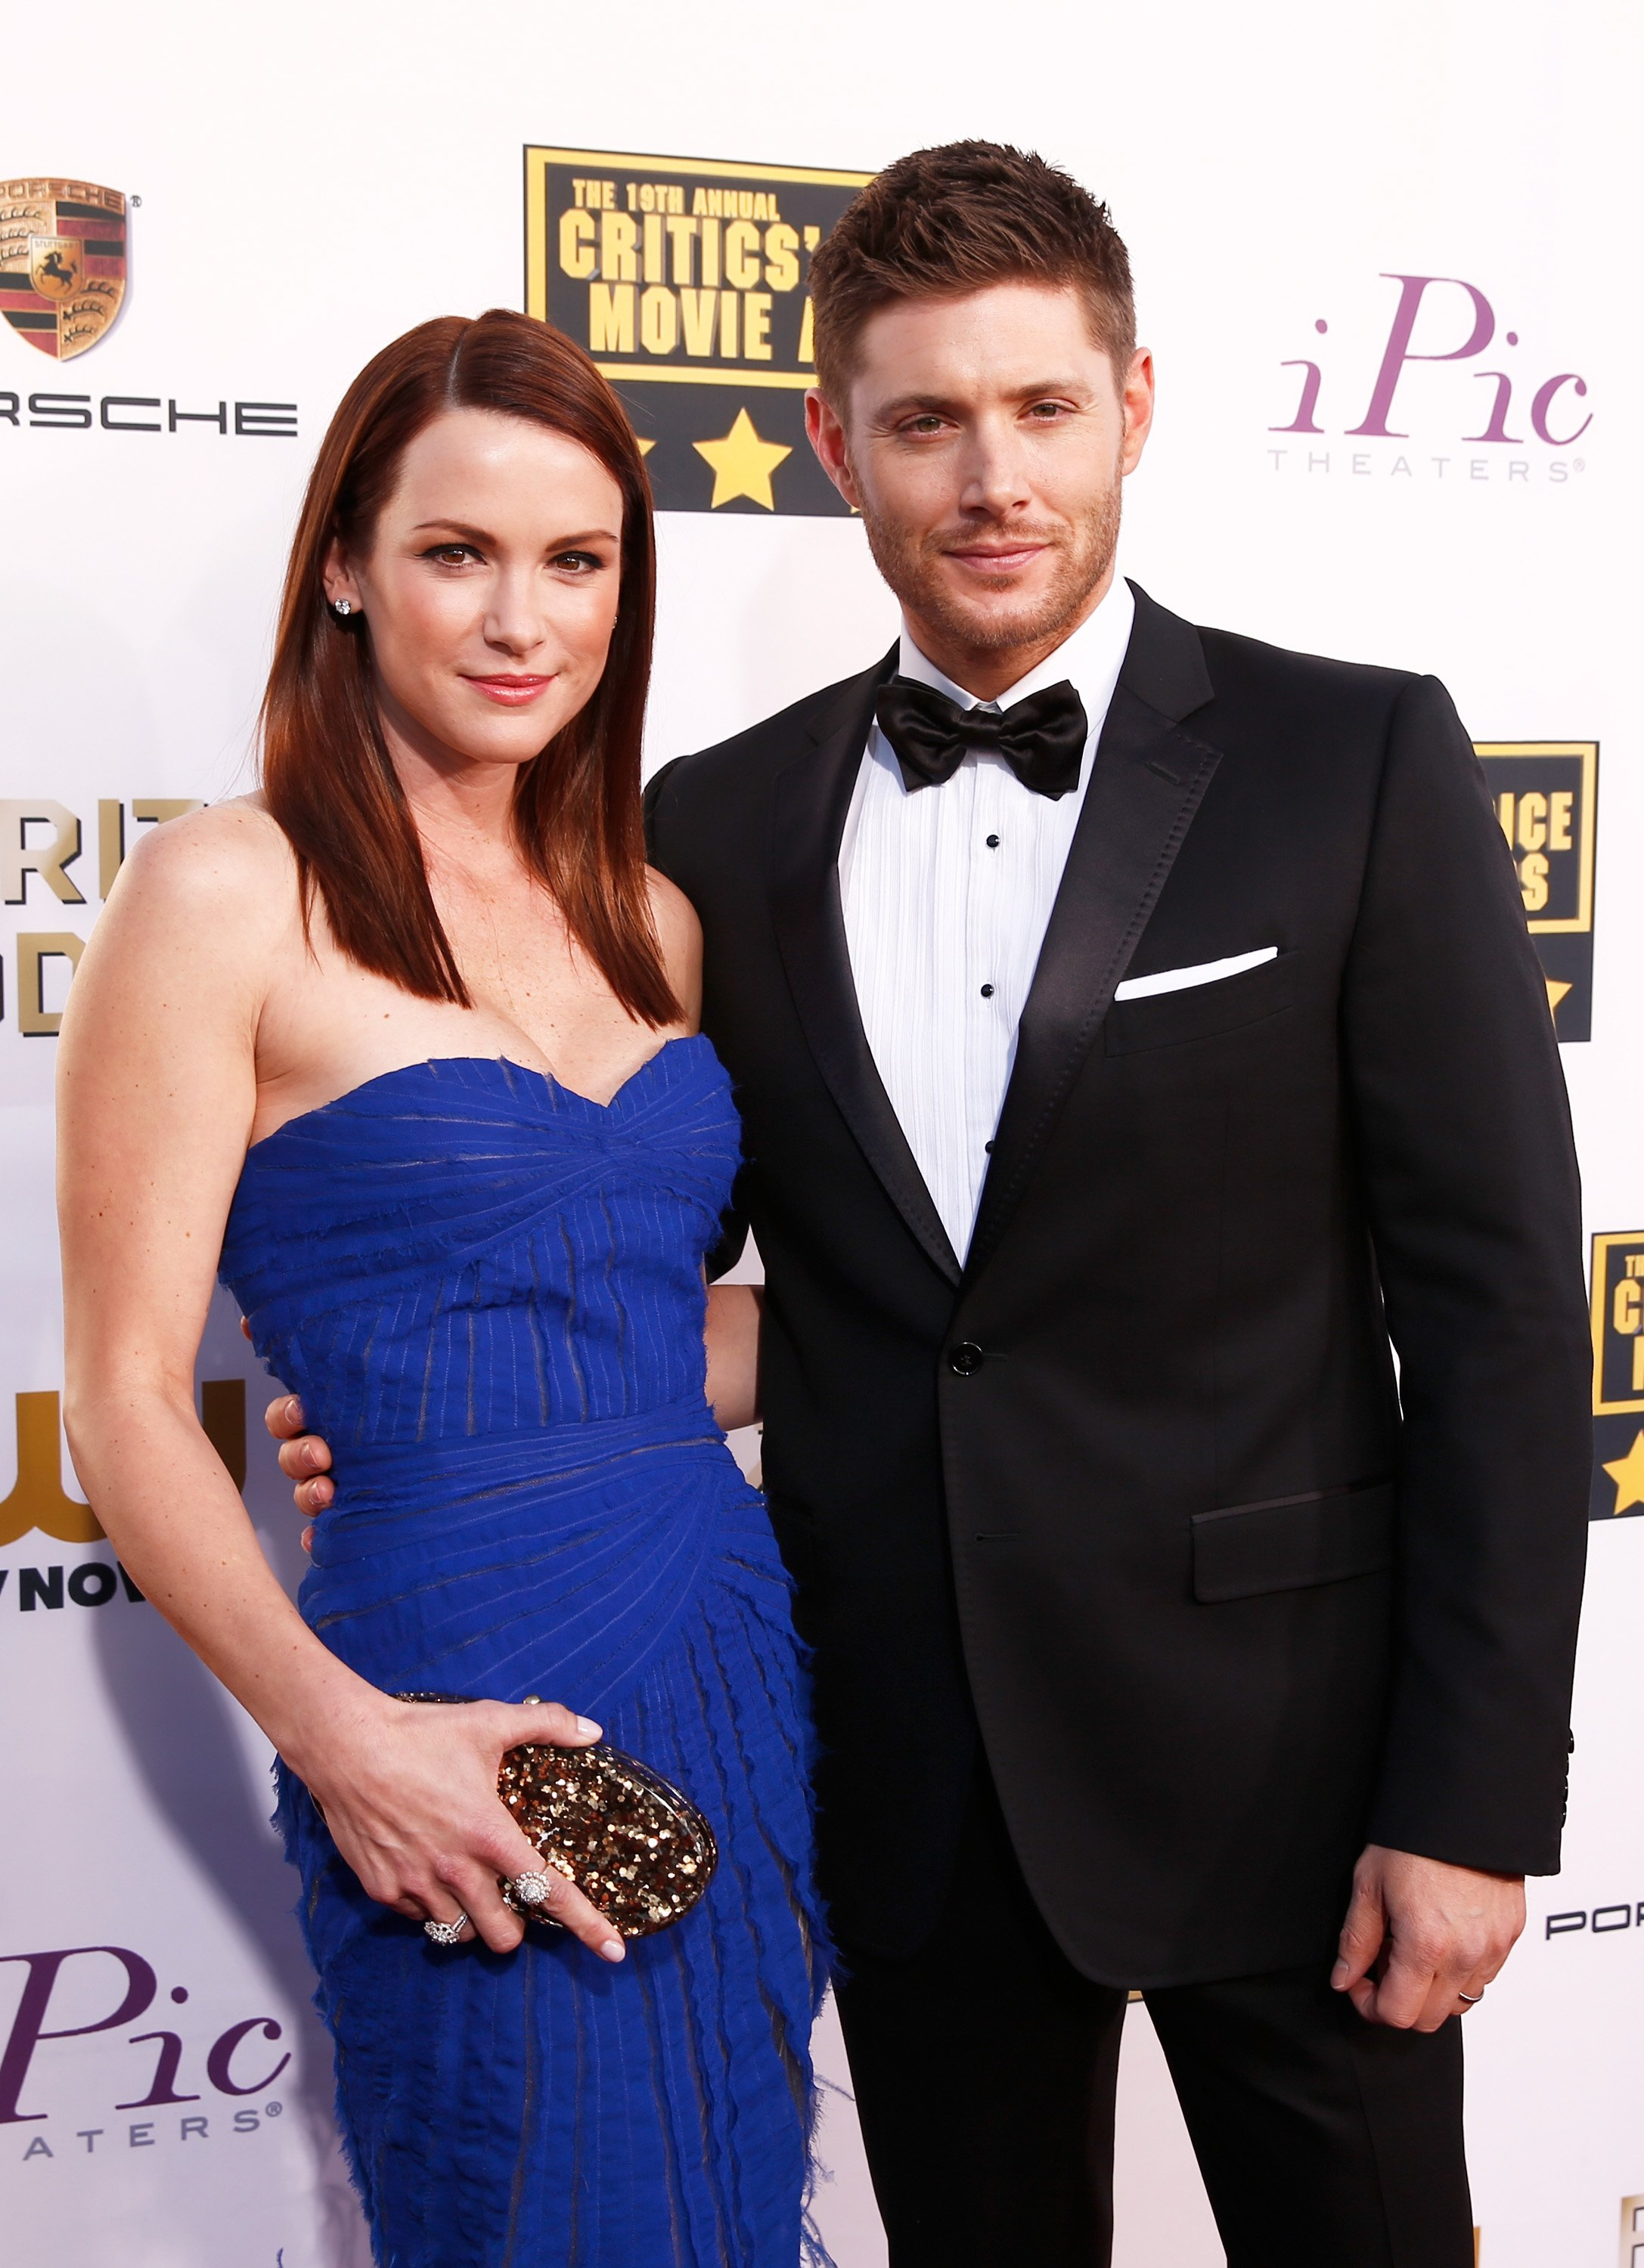 Justice Jay Ackles' parents